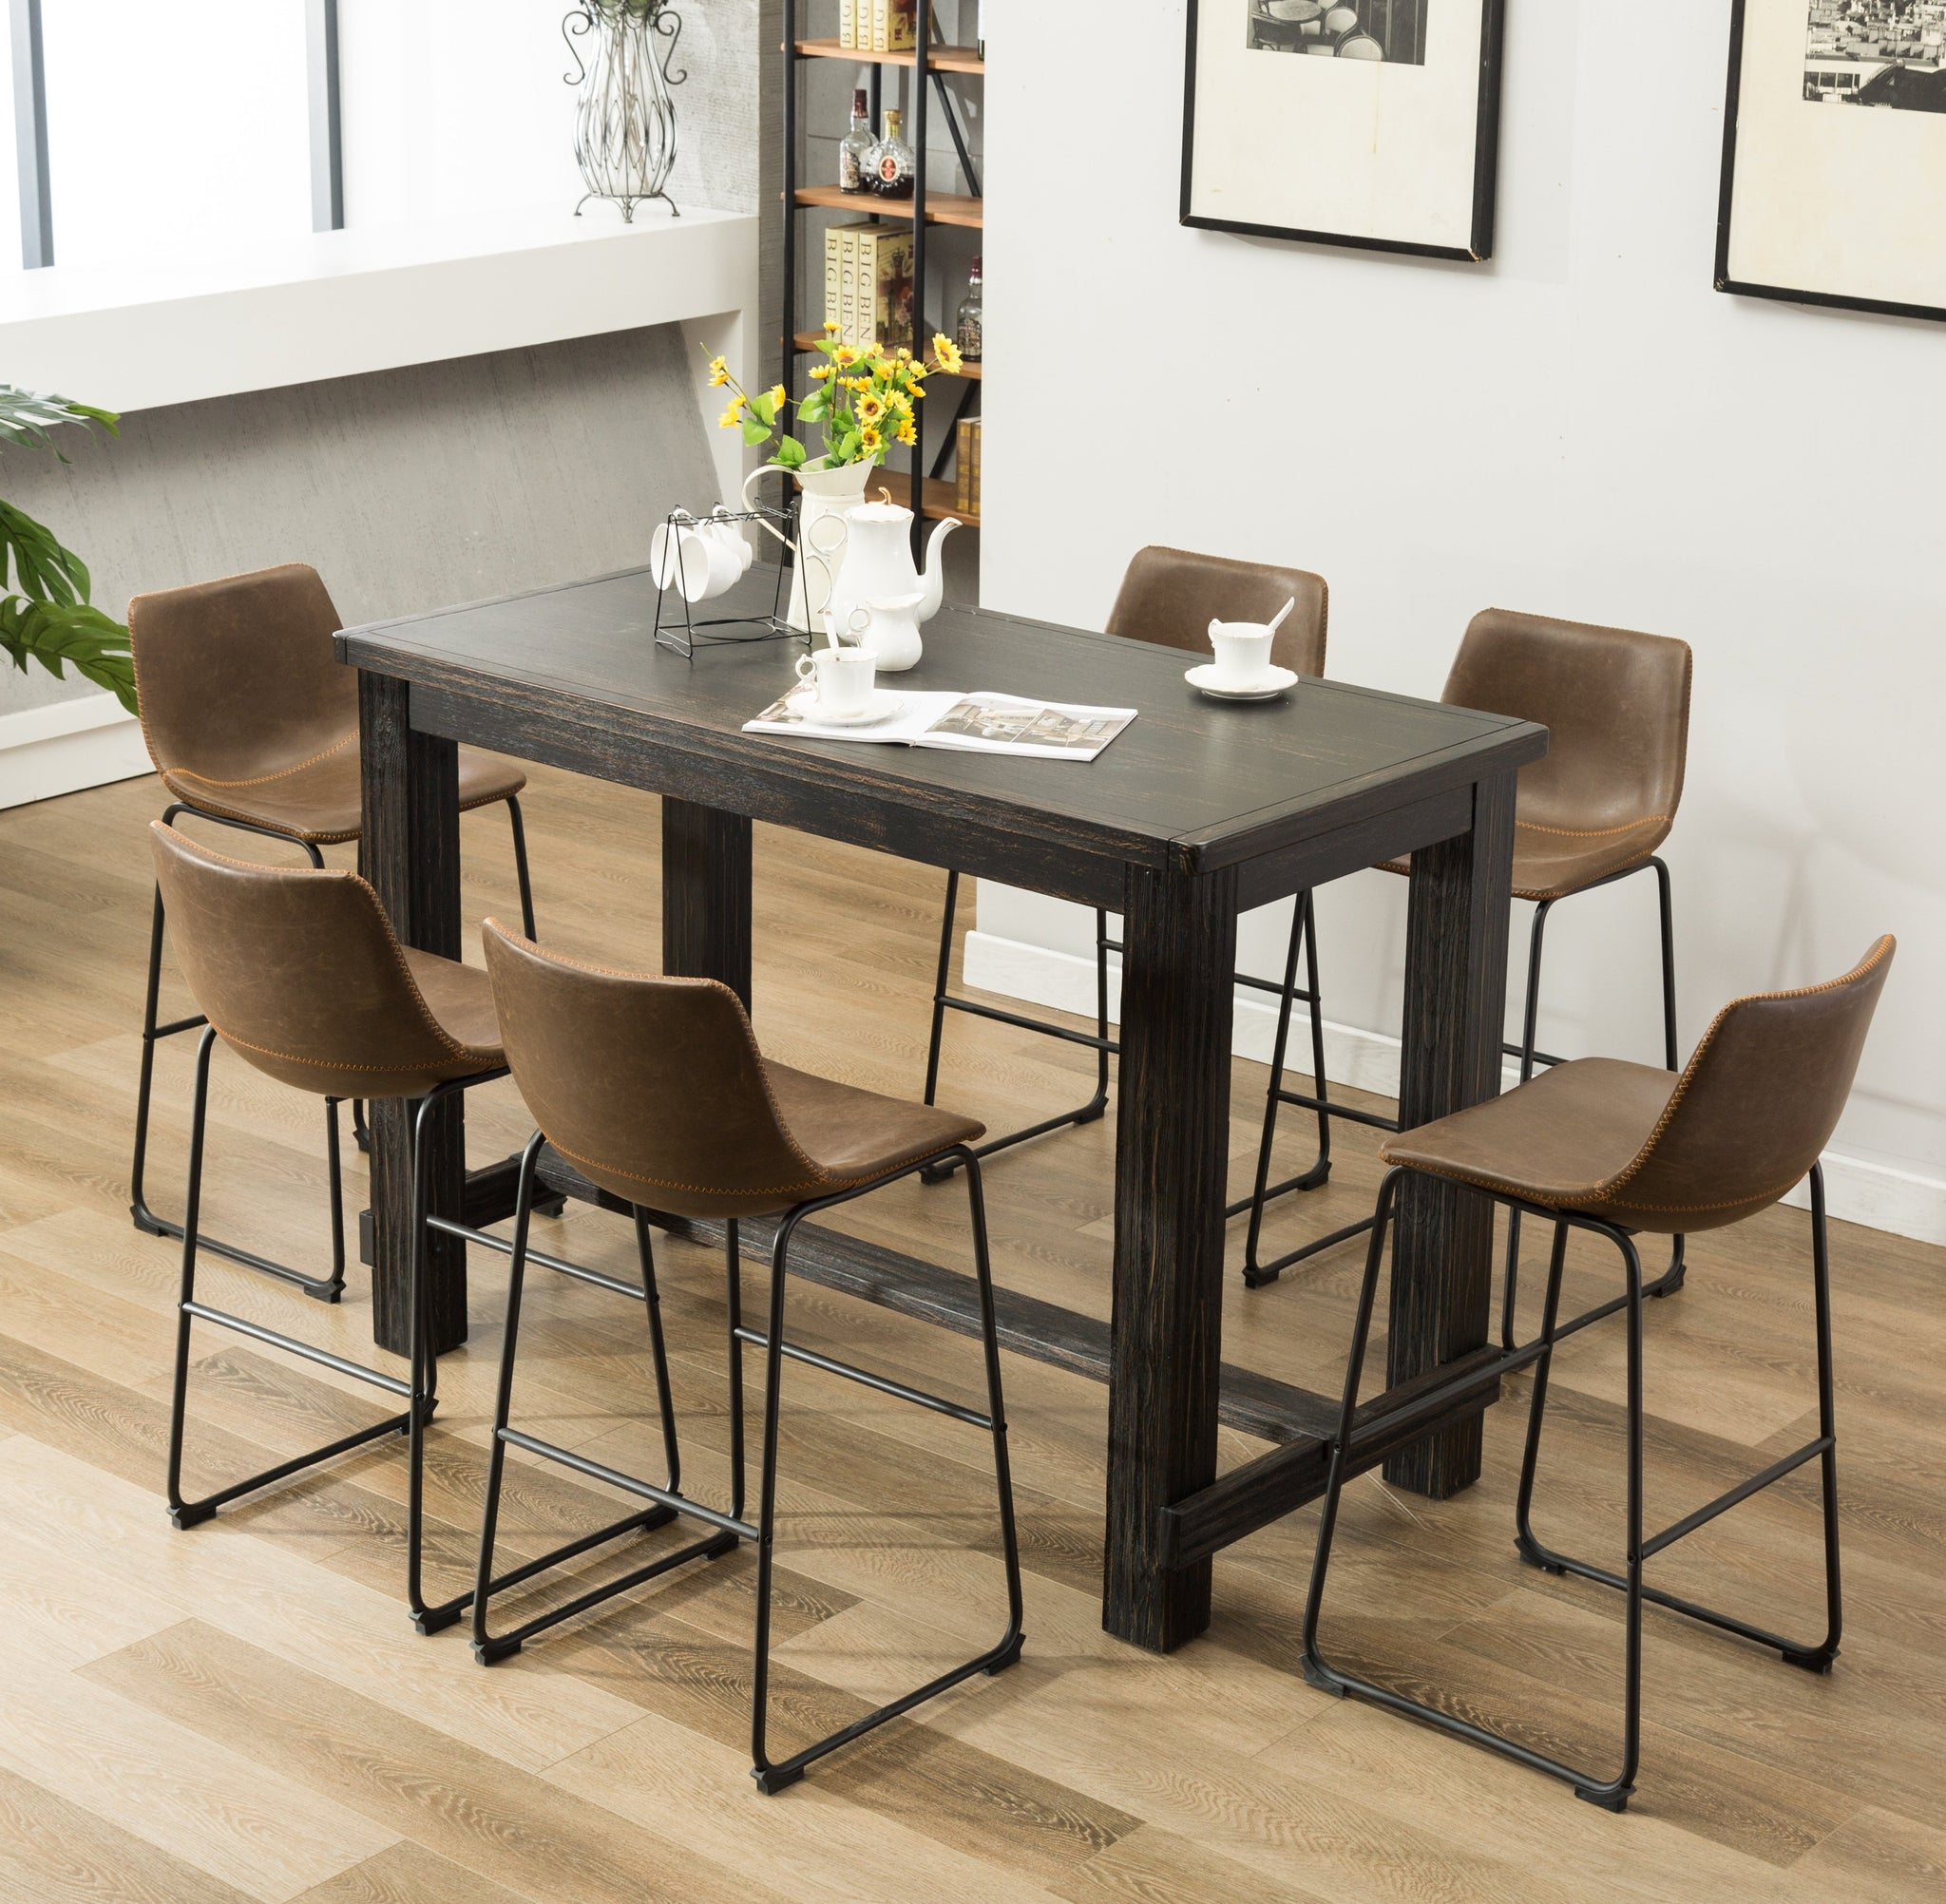 Lotusville 7-Piece Bar Height Antique Black Wood Dining Table with 6 Brown Faux Leather Chairs